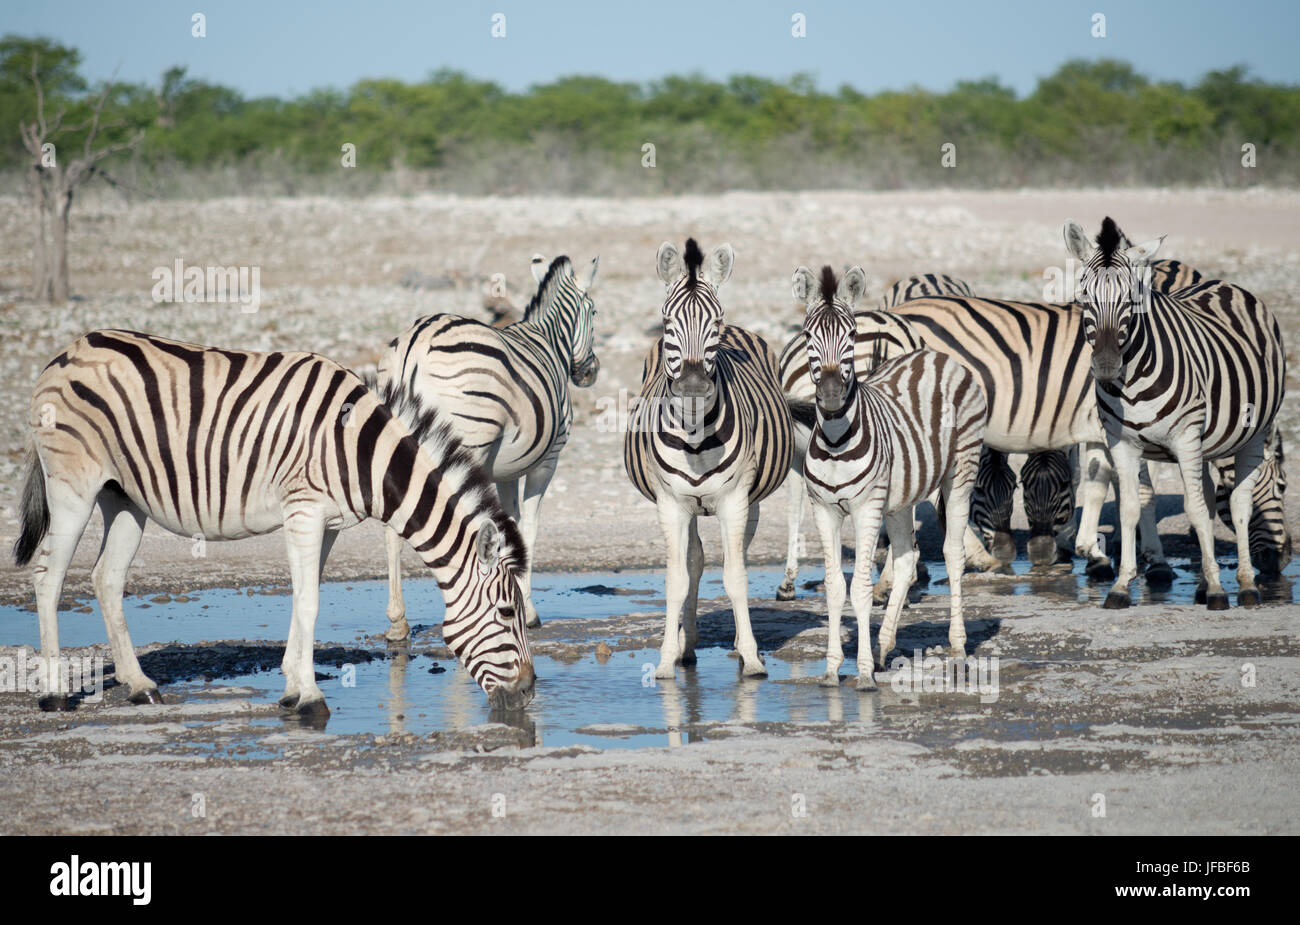 zebras at a watering hole - Stock Image